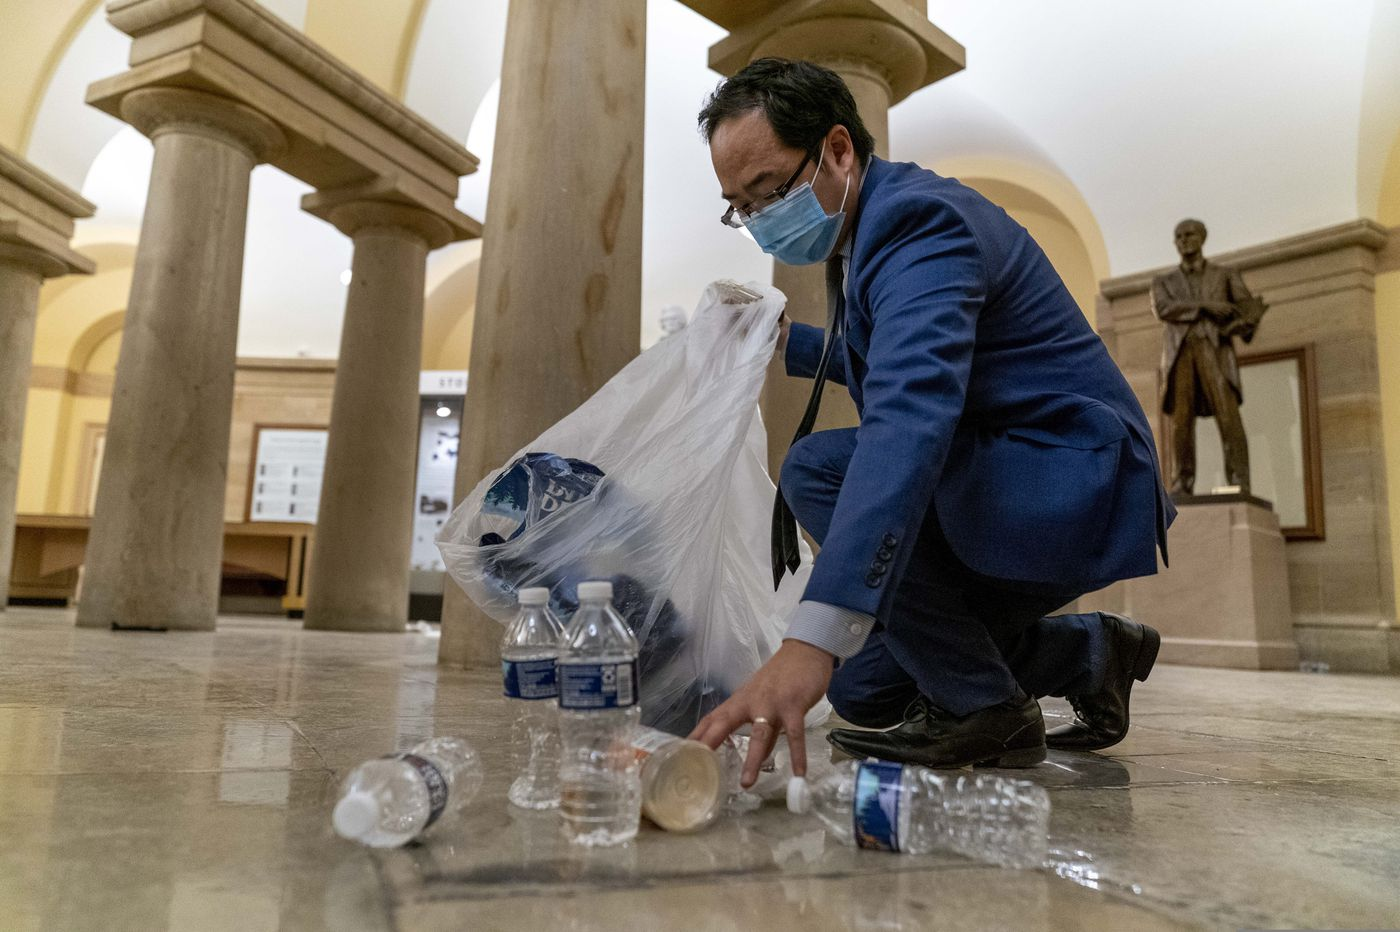 N.J. Rep. Andy Kim helps clean up Capitol: 'What else could I do?'